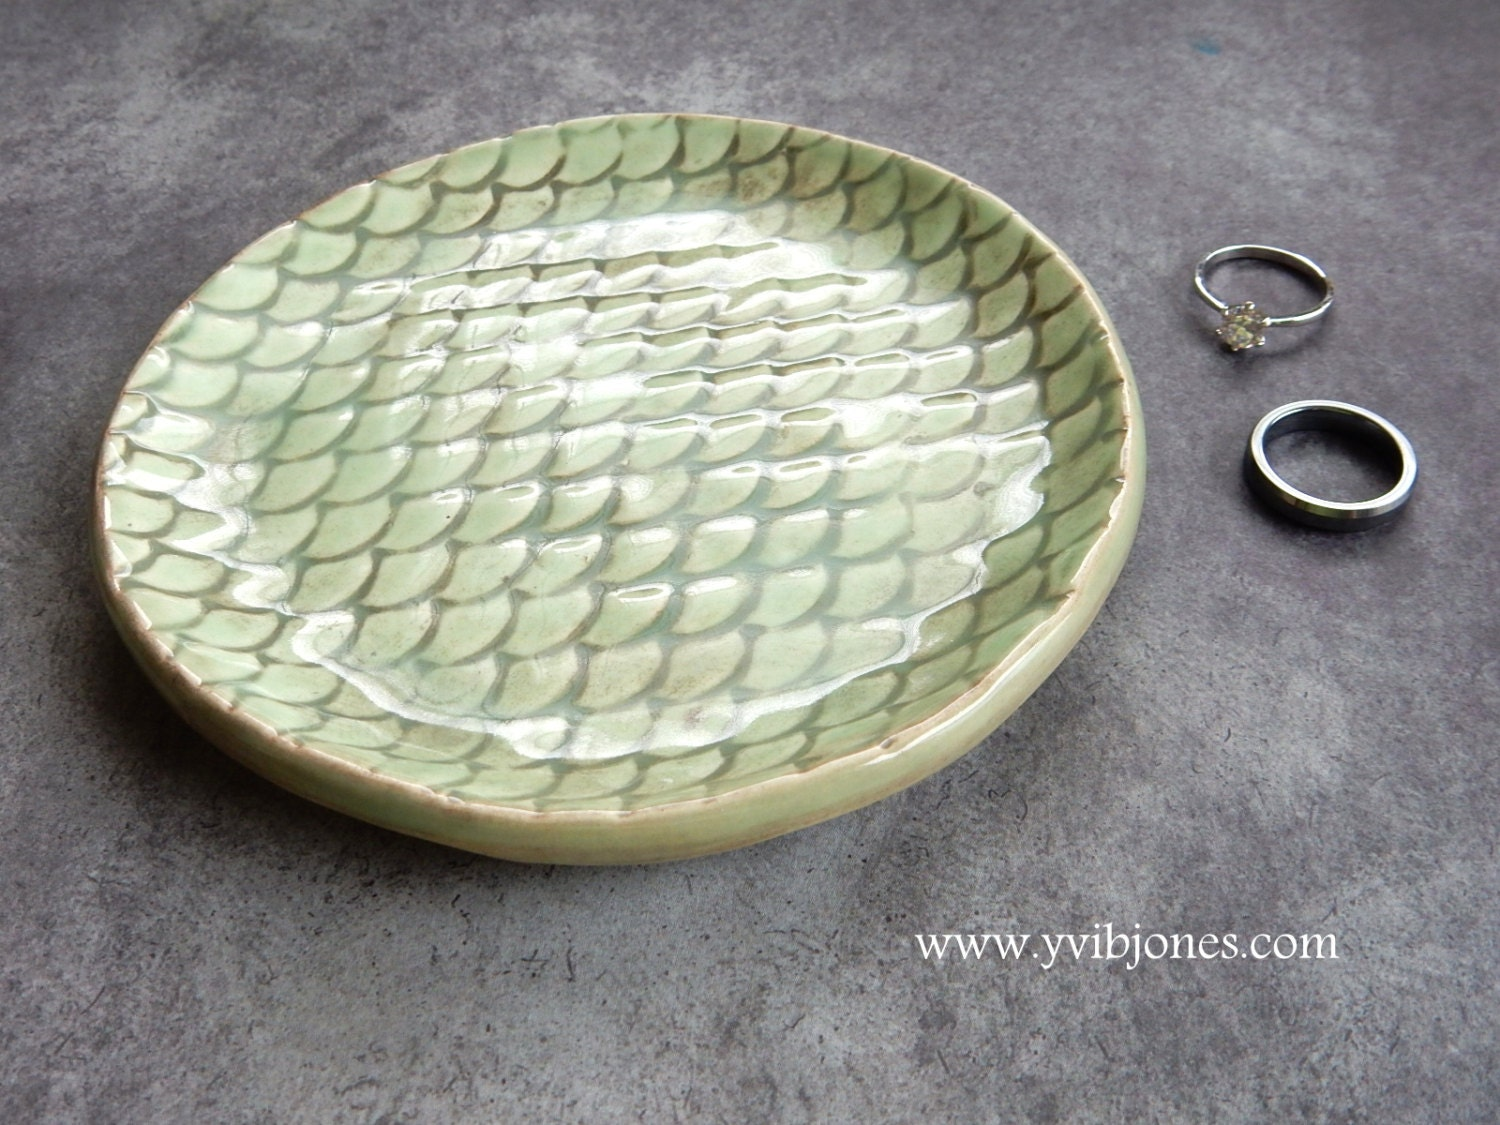 Mermaid Scale Ring Holder Jewelry Dish Small Snack Plate Sea Glass